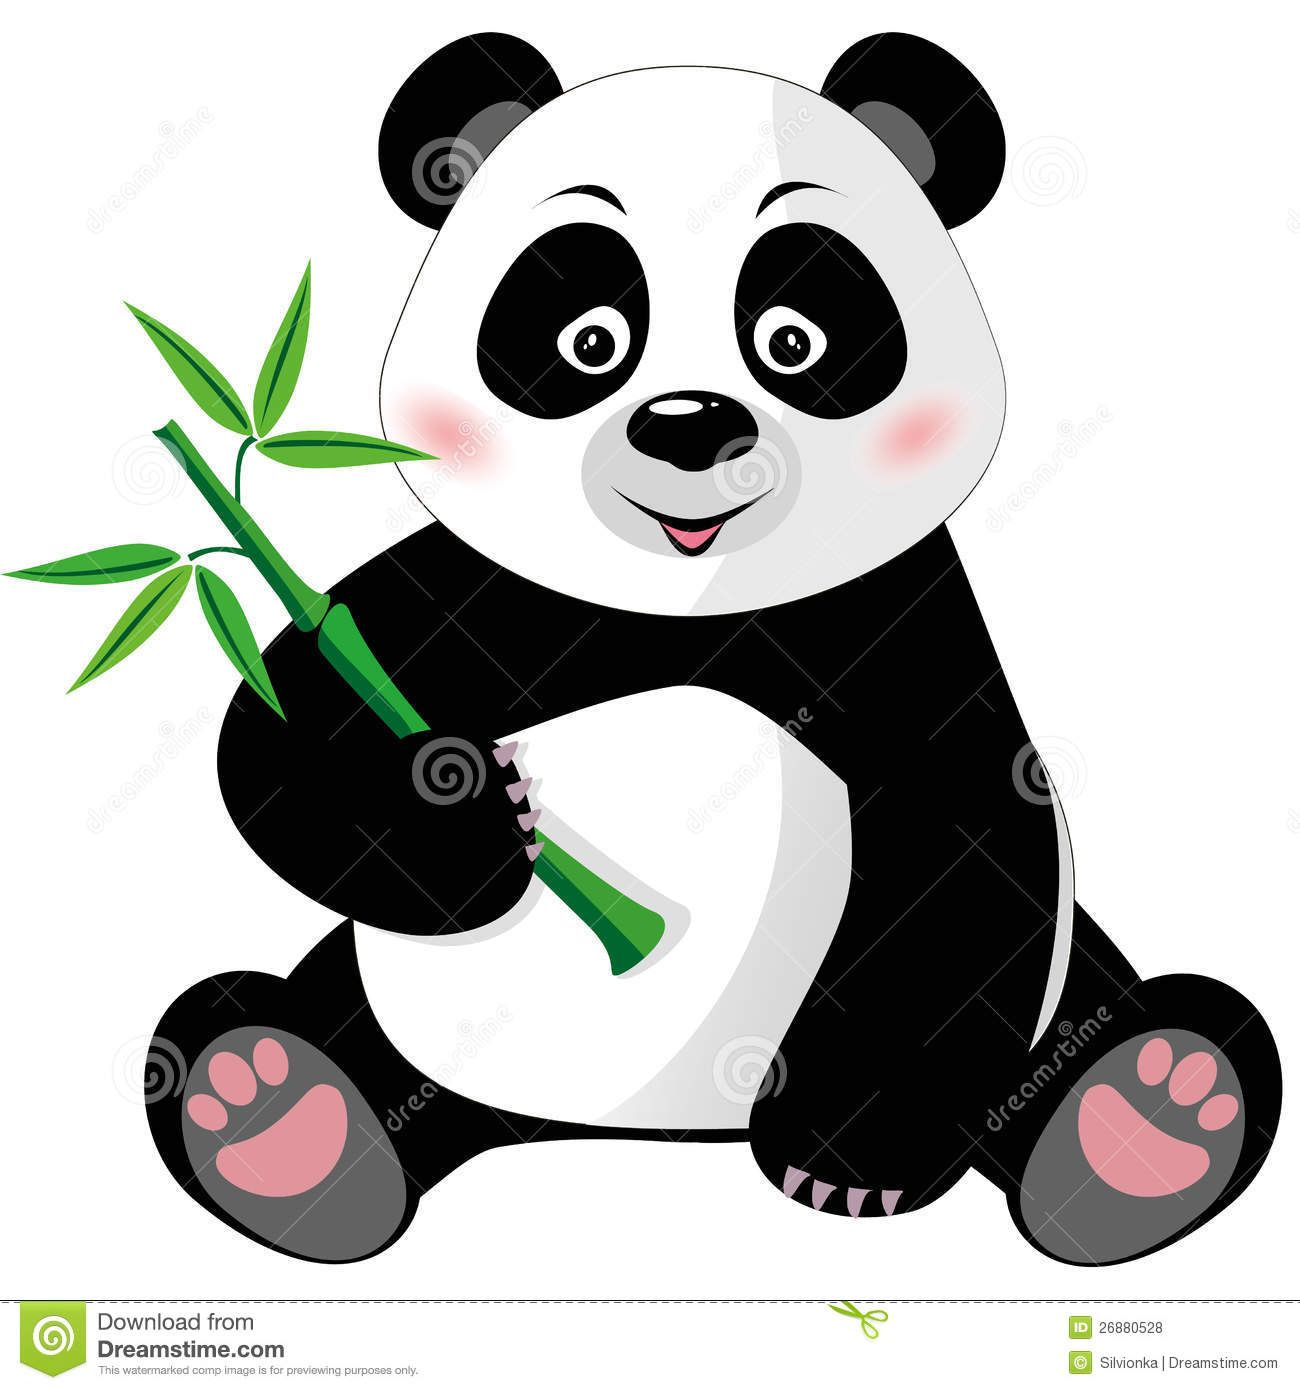 Baby Panda Clipart at GetDrawings.com.